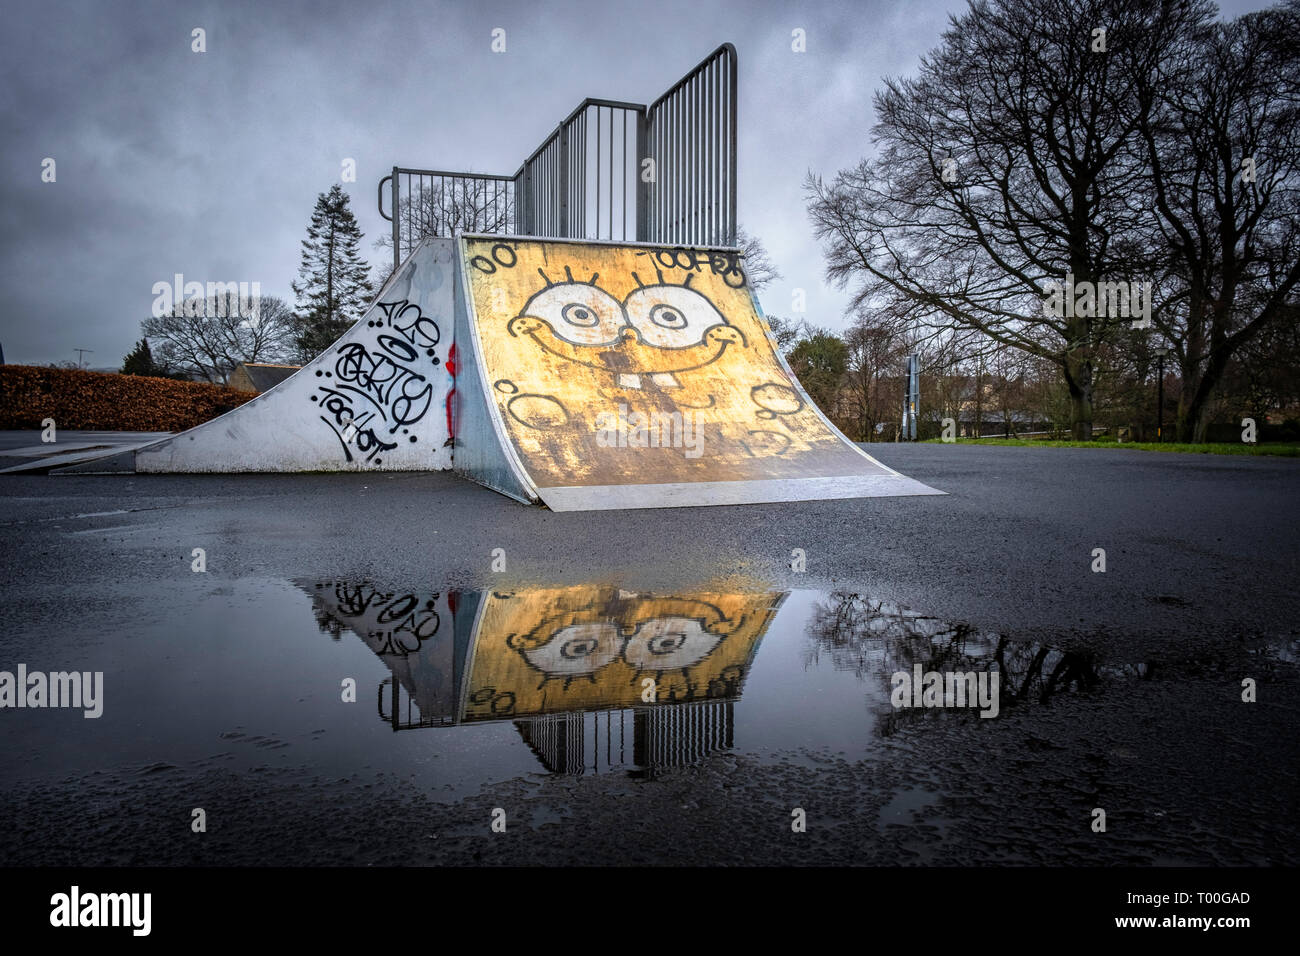 Empty children's playground with graffiti face painted on an deserted skateboard ramp reflected in puddle in dismal wet weather - Stock Image